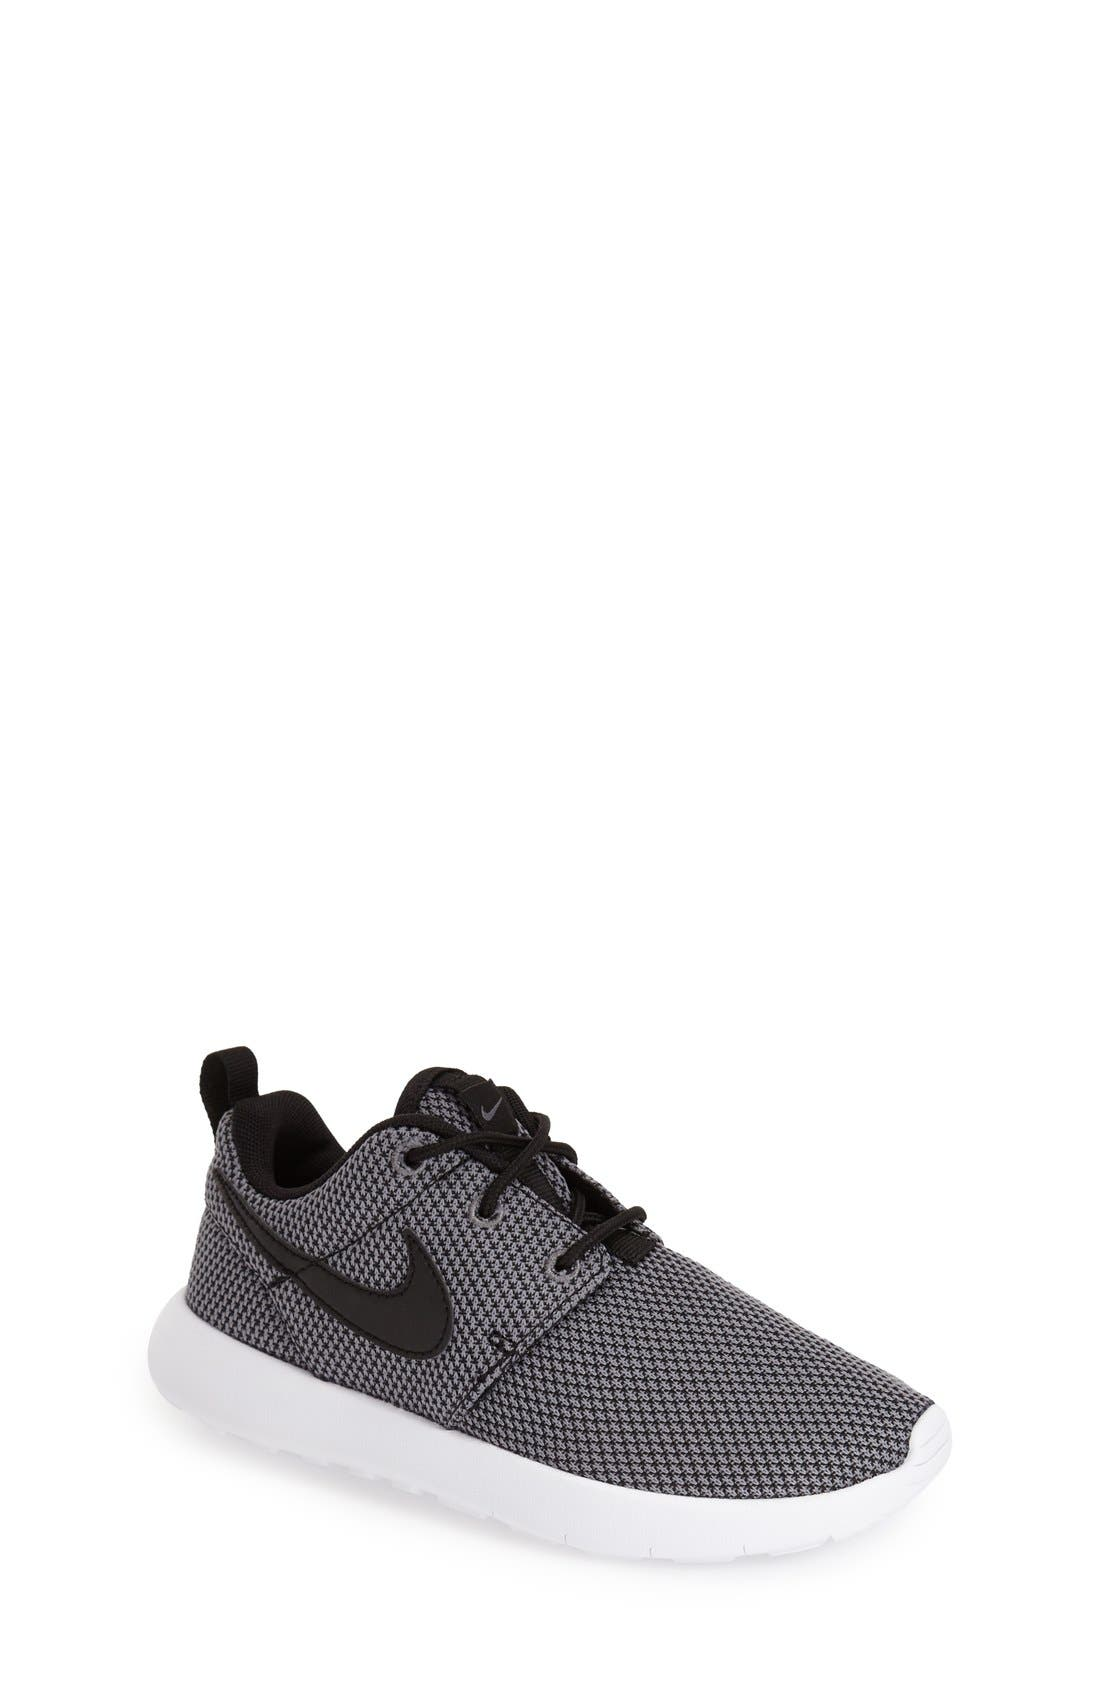 Roshe Run Sneaker,                             Main thumbnail 6, color,